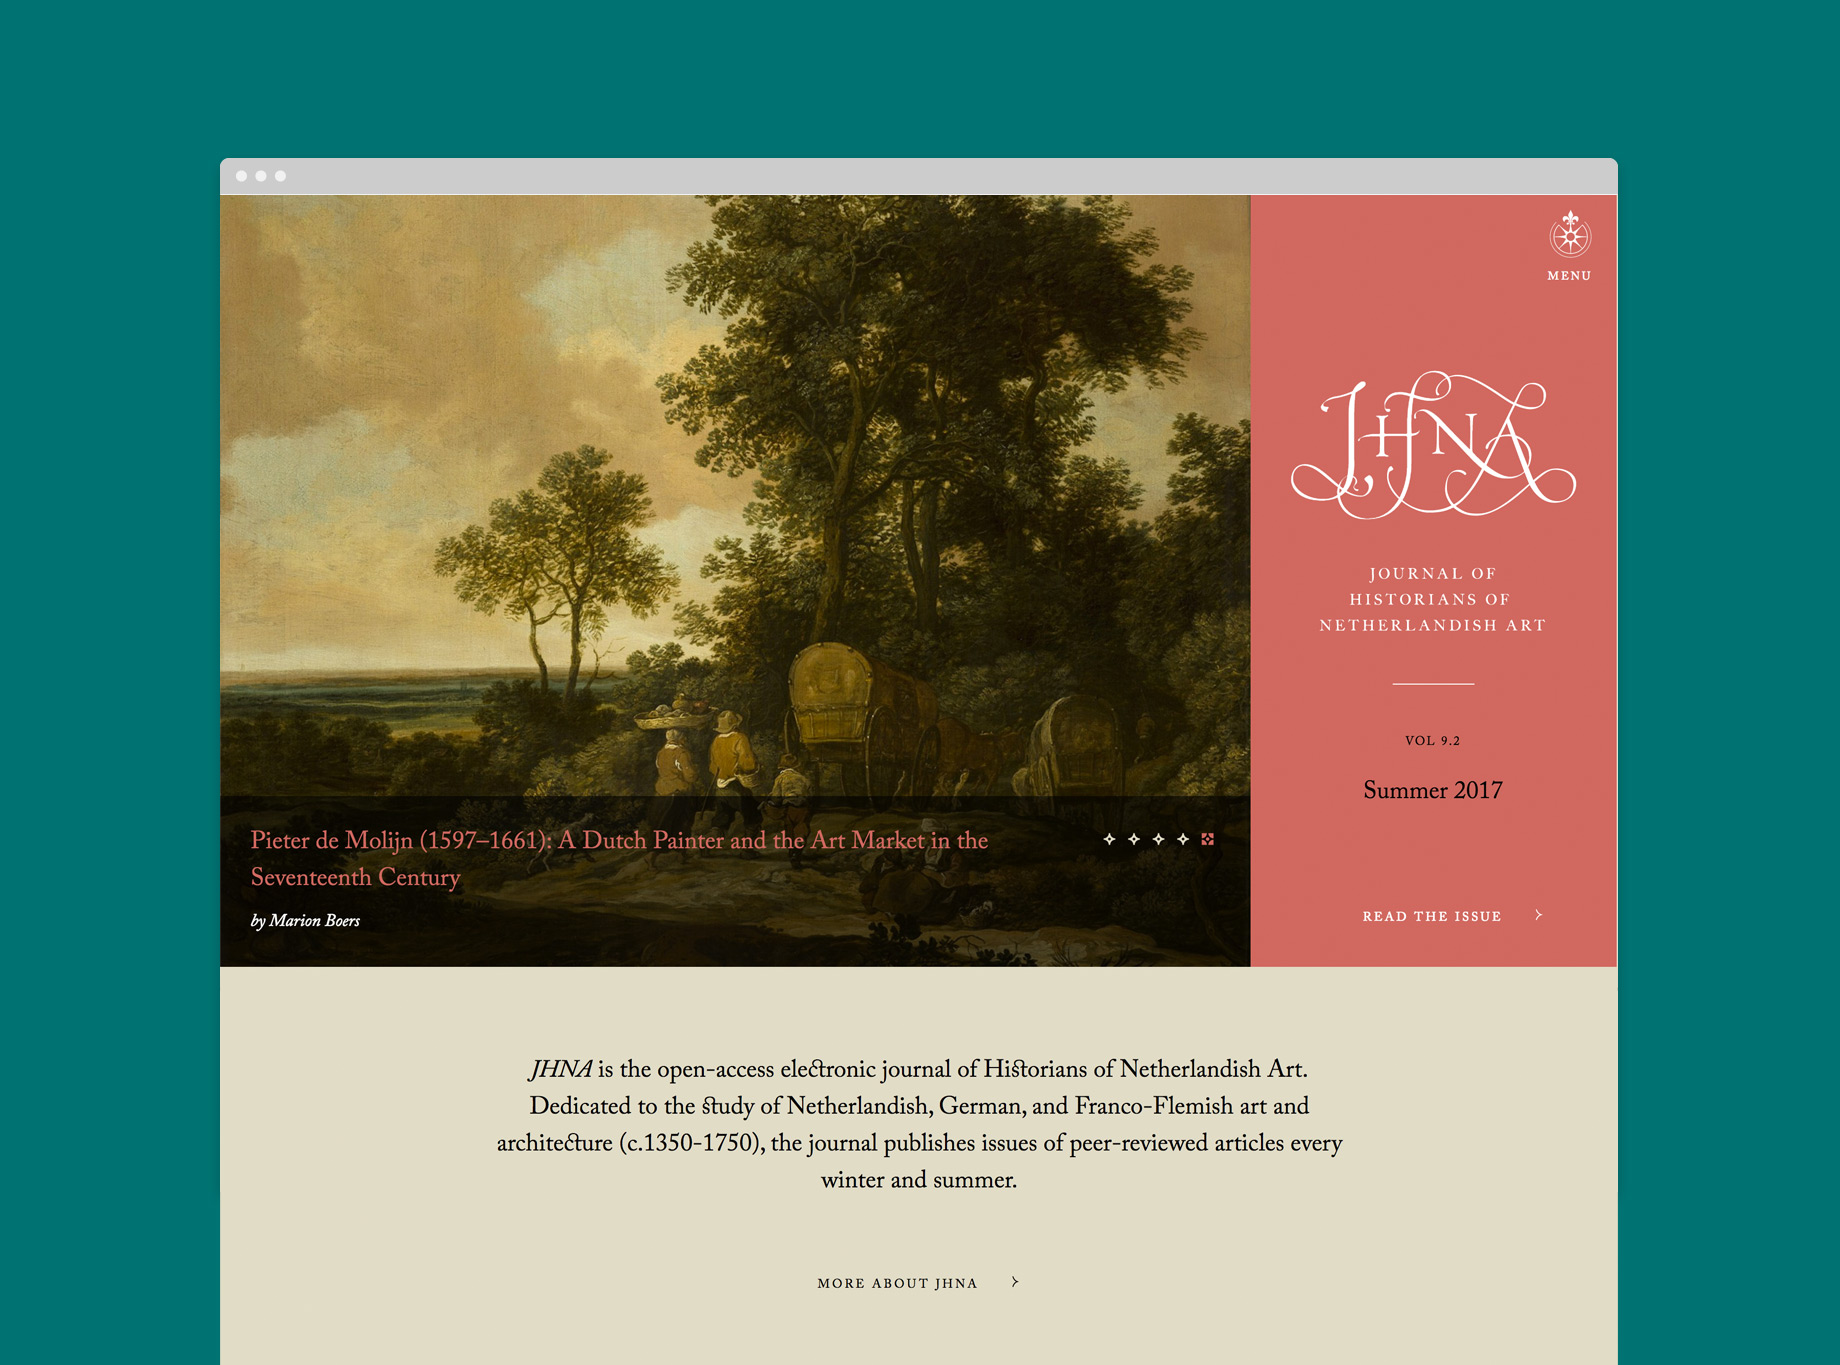 JHNA Website Design